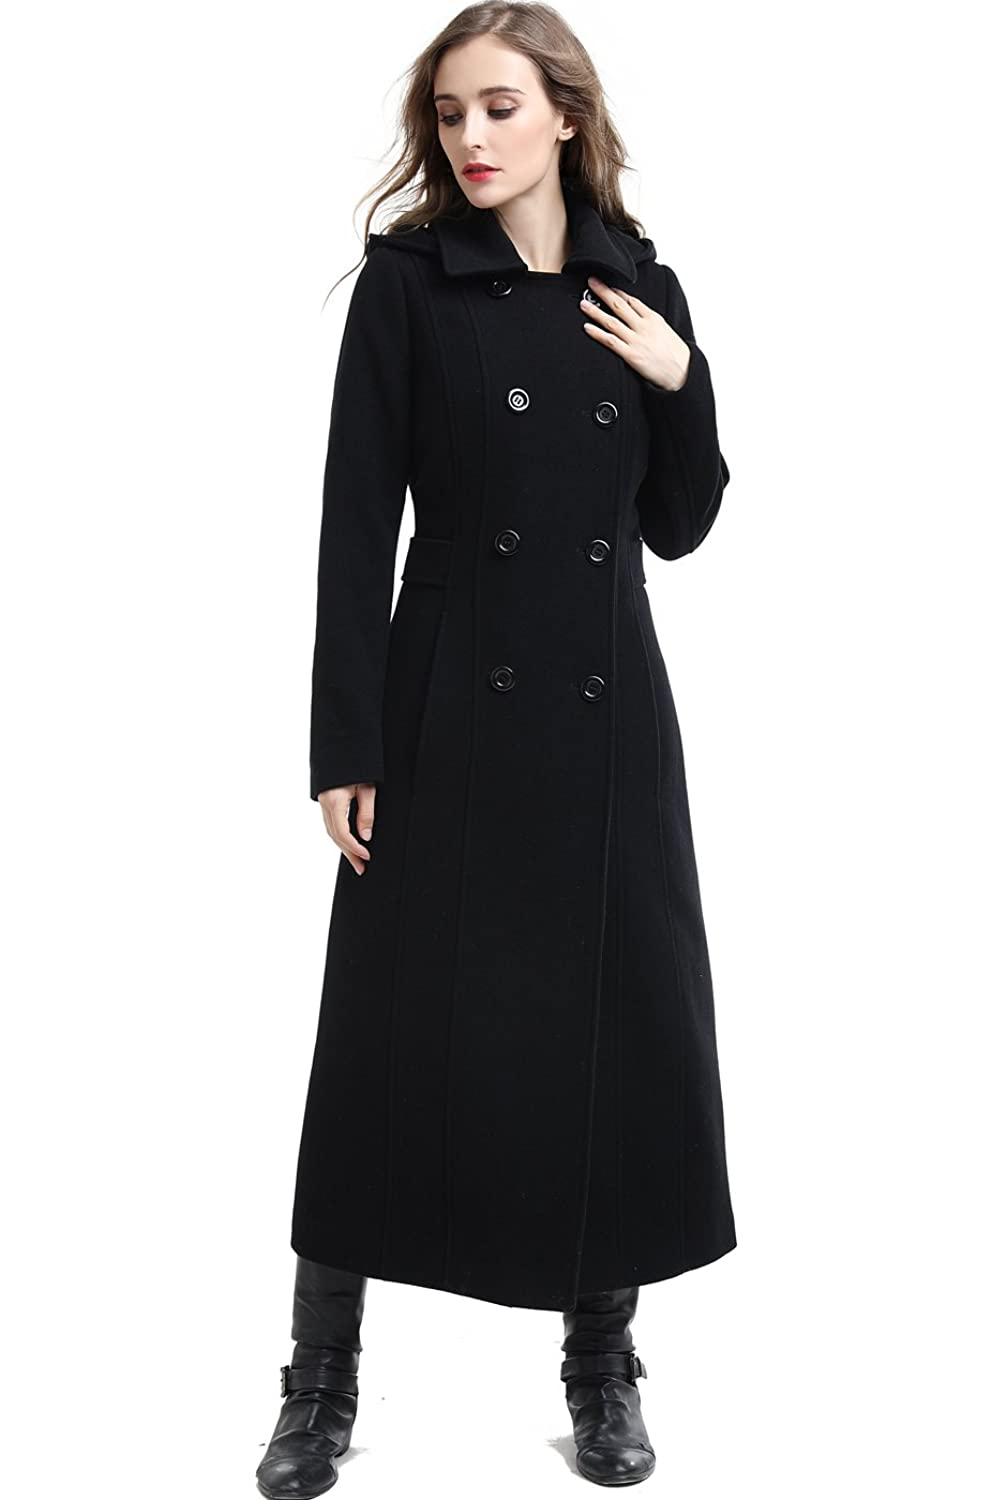 1940s Style Coats and Jackets for Sale BGSD Womens Mariel Wool Blend Hooded Long Coat $169.00 AT vintagedancer.com